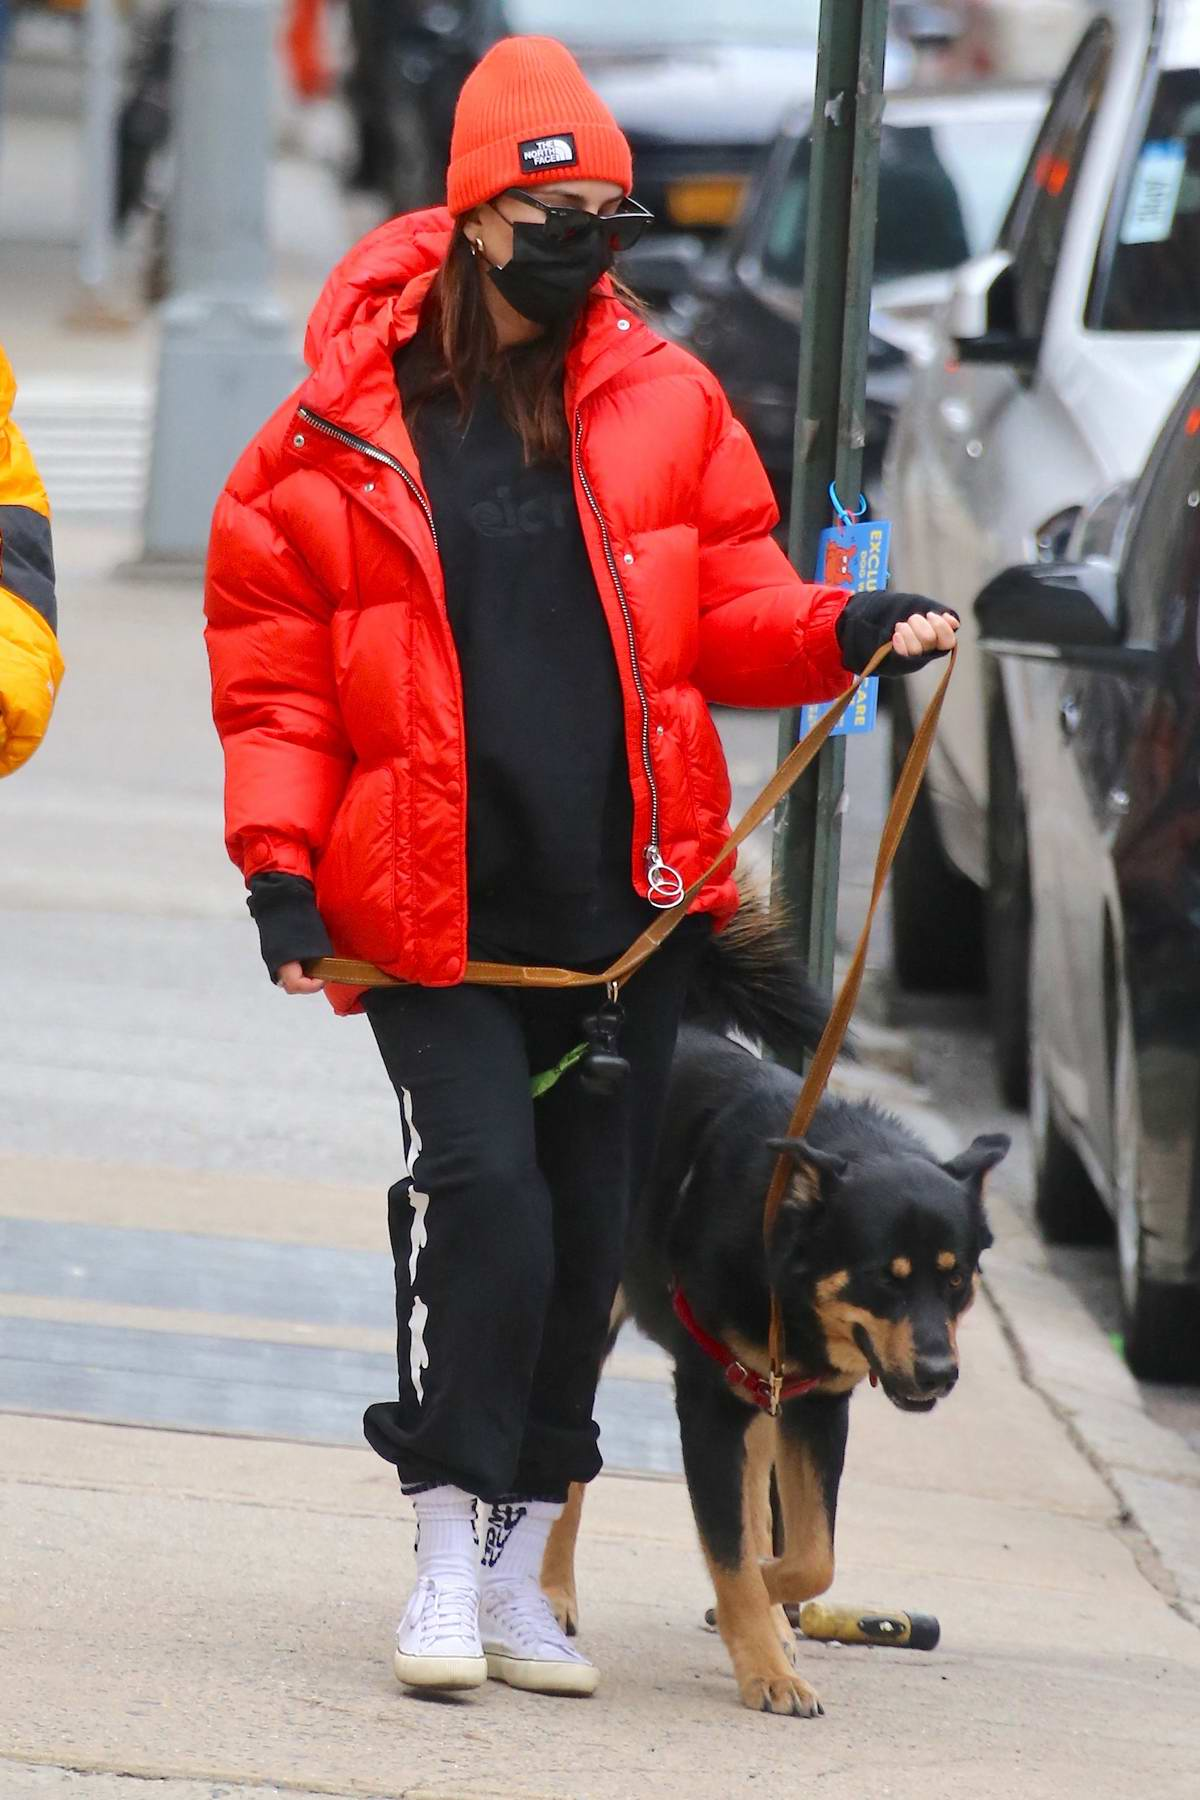 Emily Ratajkowski stands out in bright red puffer jacket while visiting City MD Urgent care in Tribeca, New York City